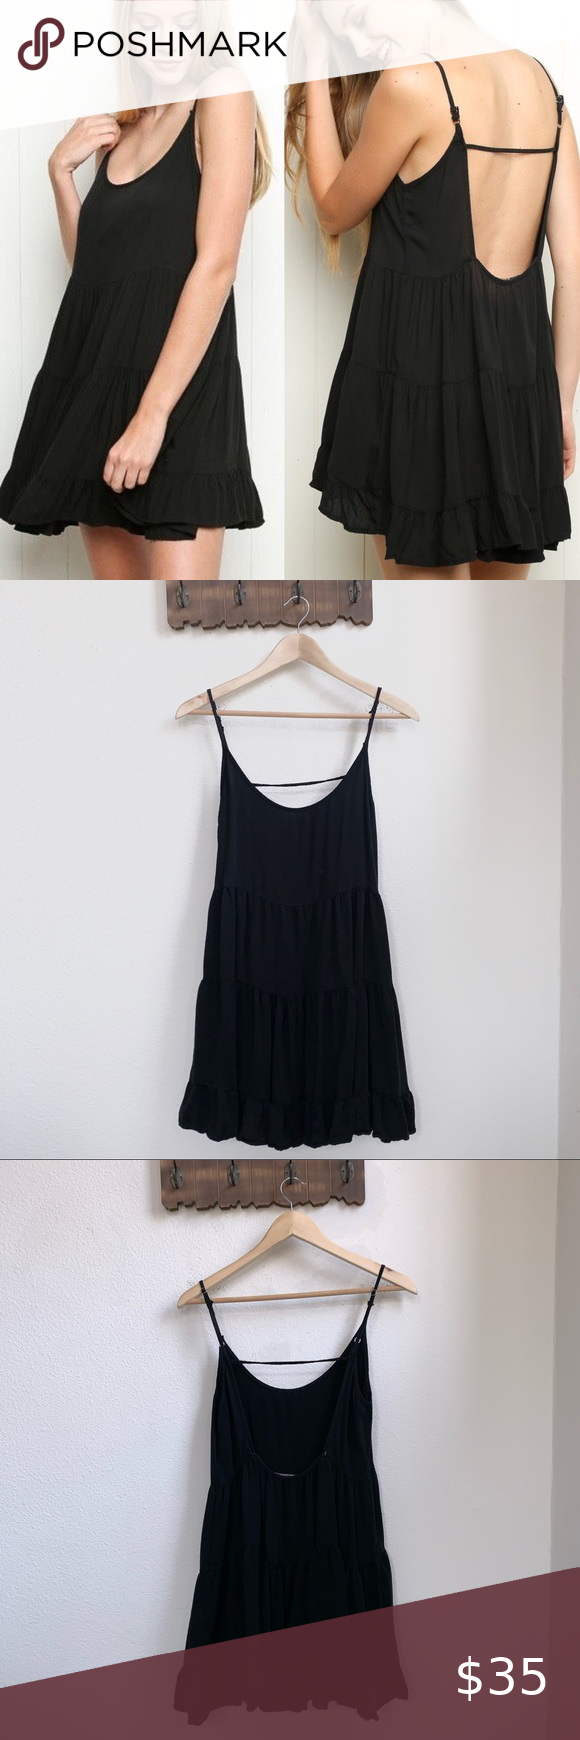 Black Mini Tunic Dress Small